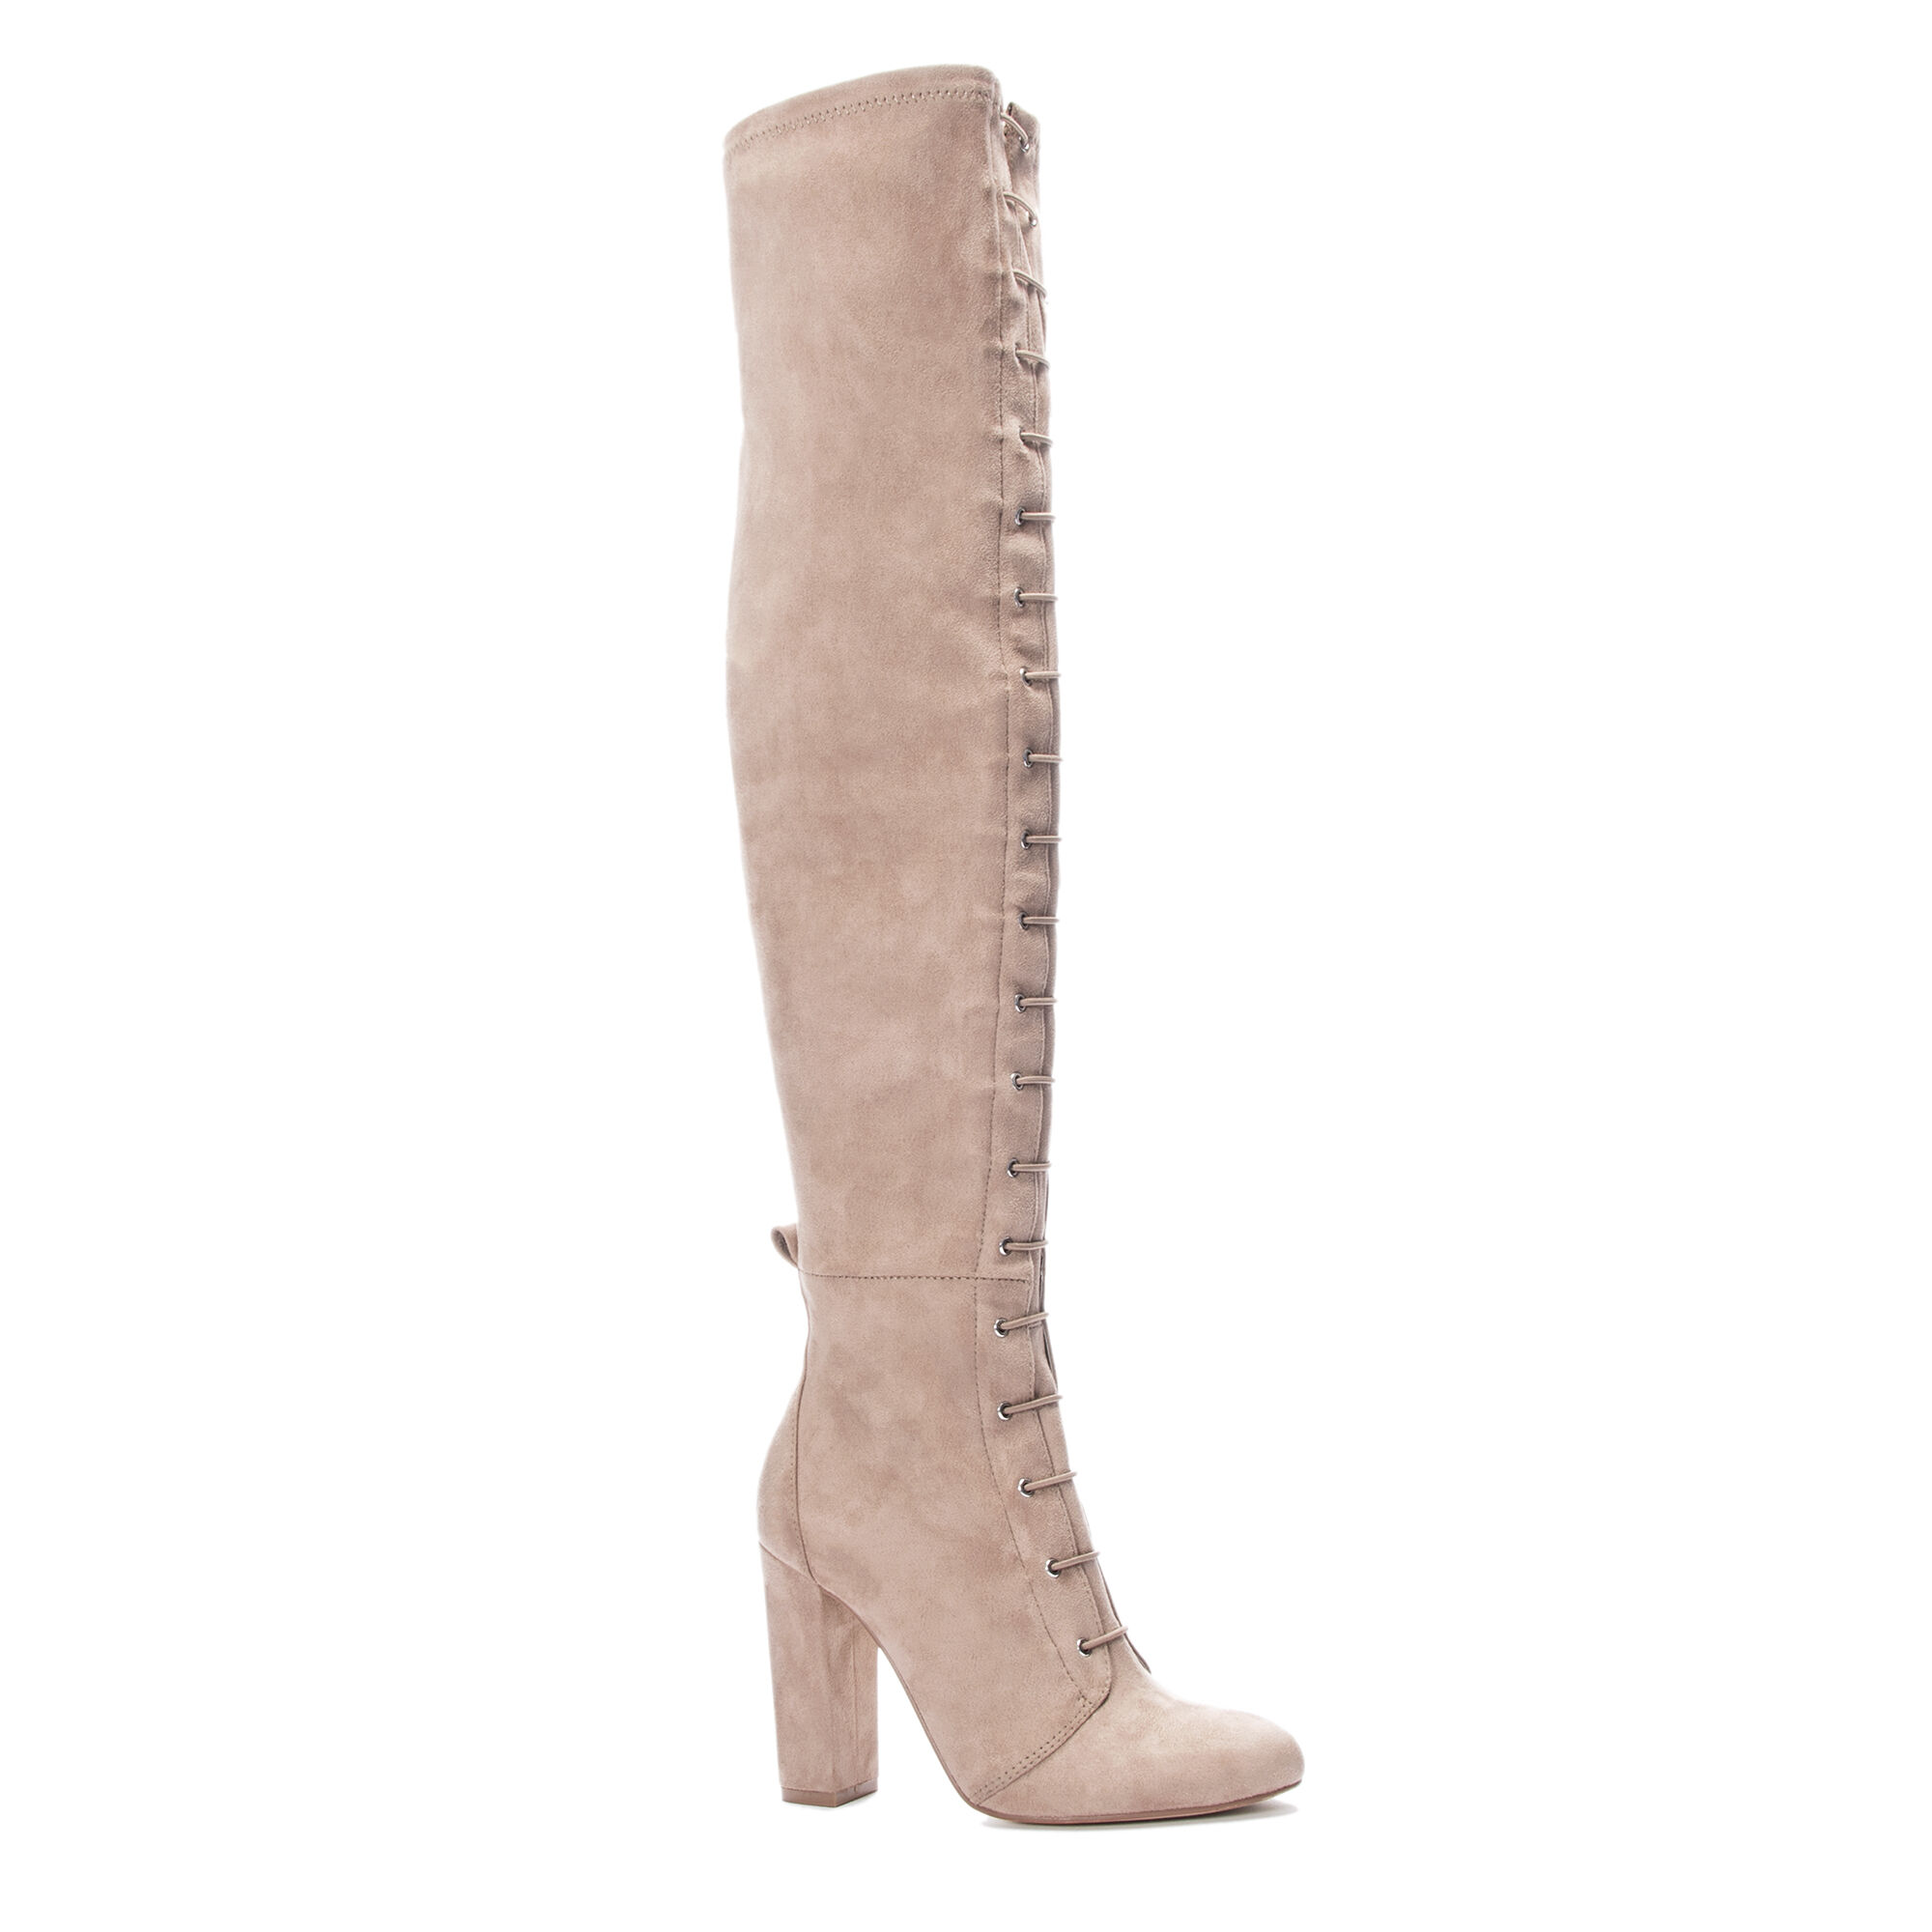 80bc99ac46bf Benita Lace Up Over the Knee Boot Heels